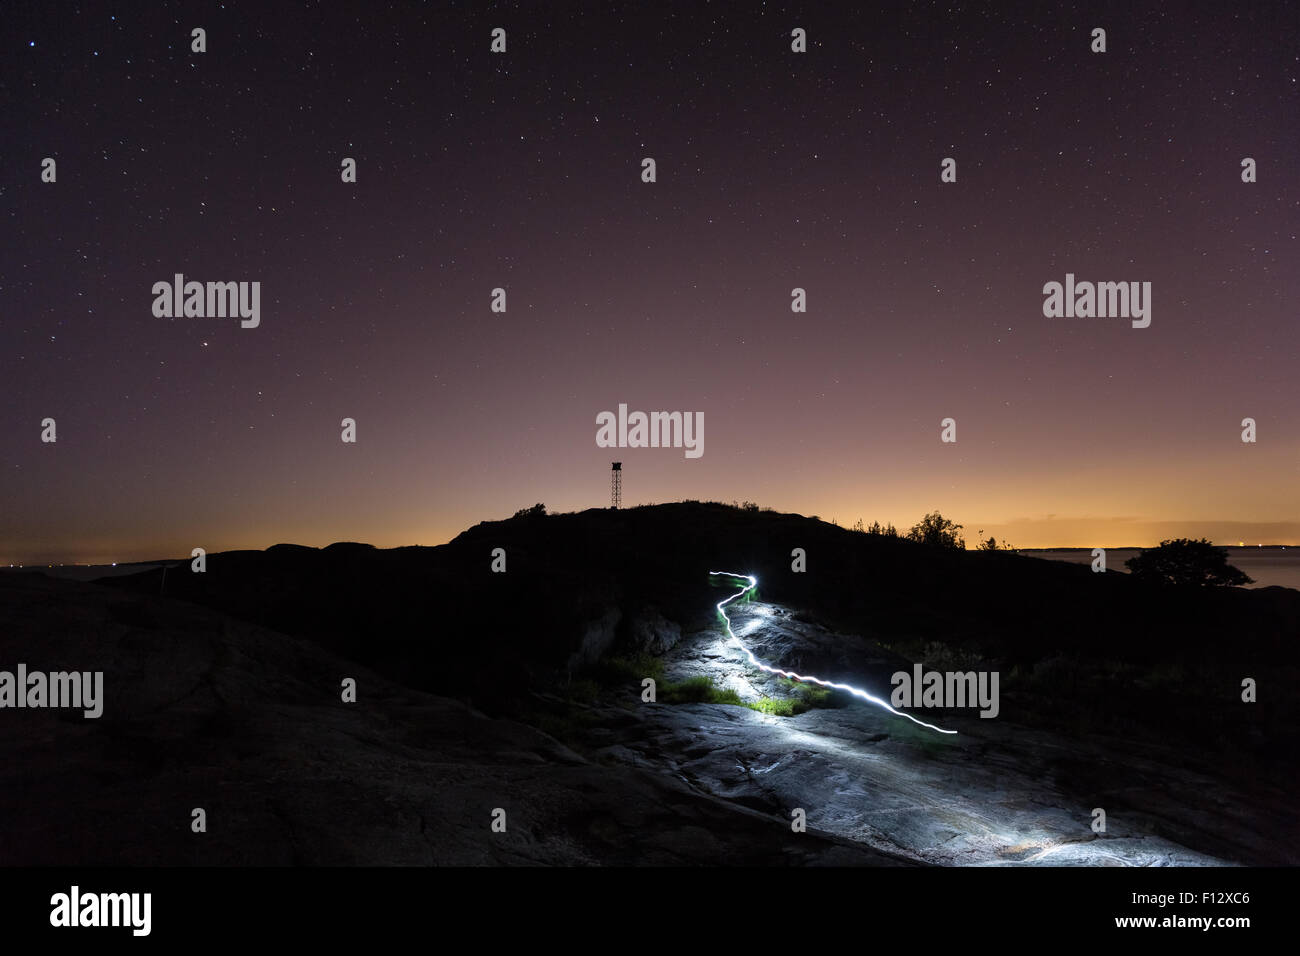 Light trail at Länsi-Toukki island, Helsinki, Finland, Europe, EU Stock Photo